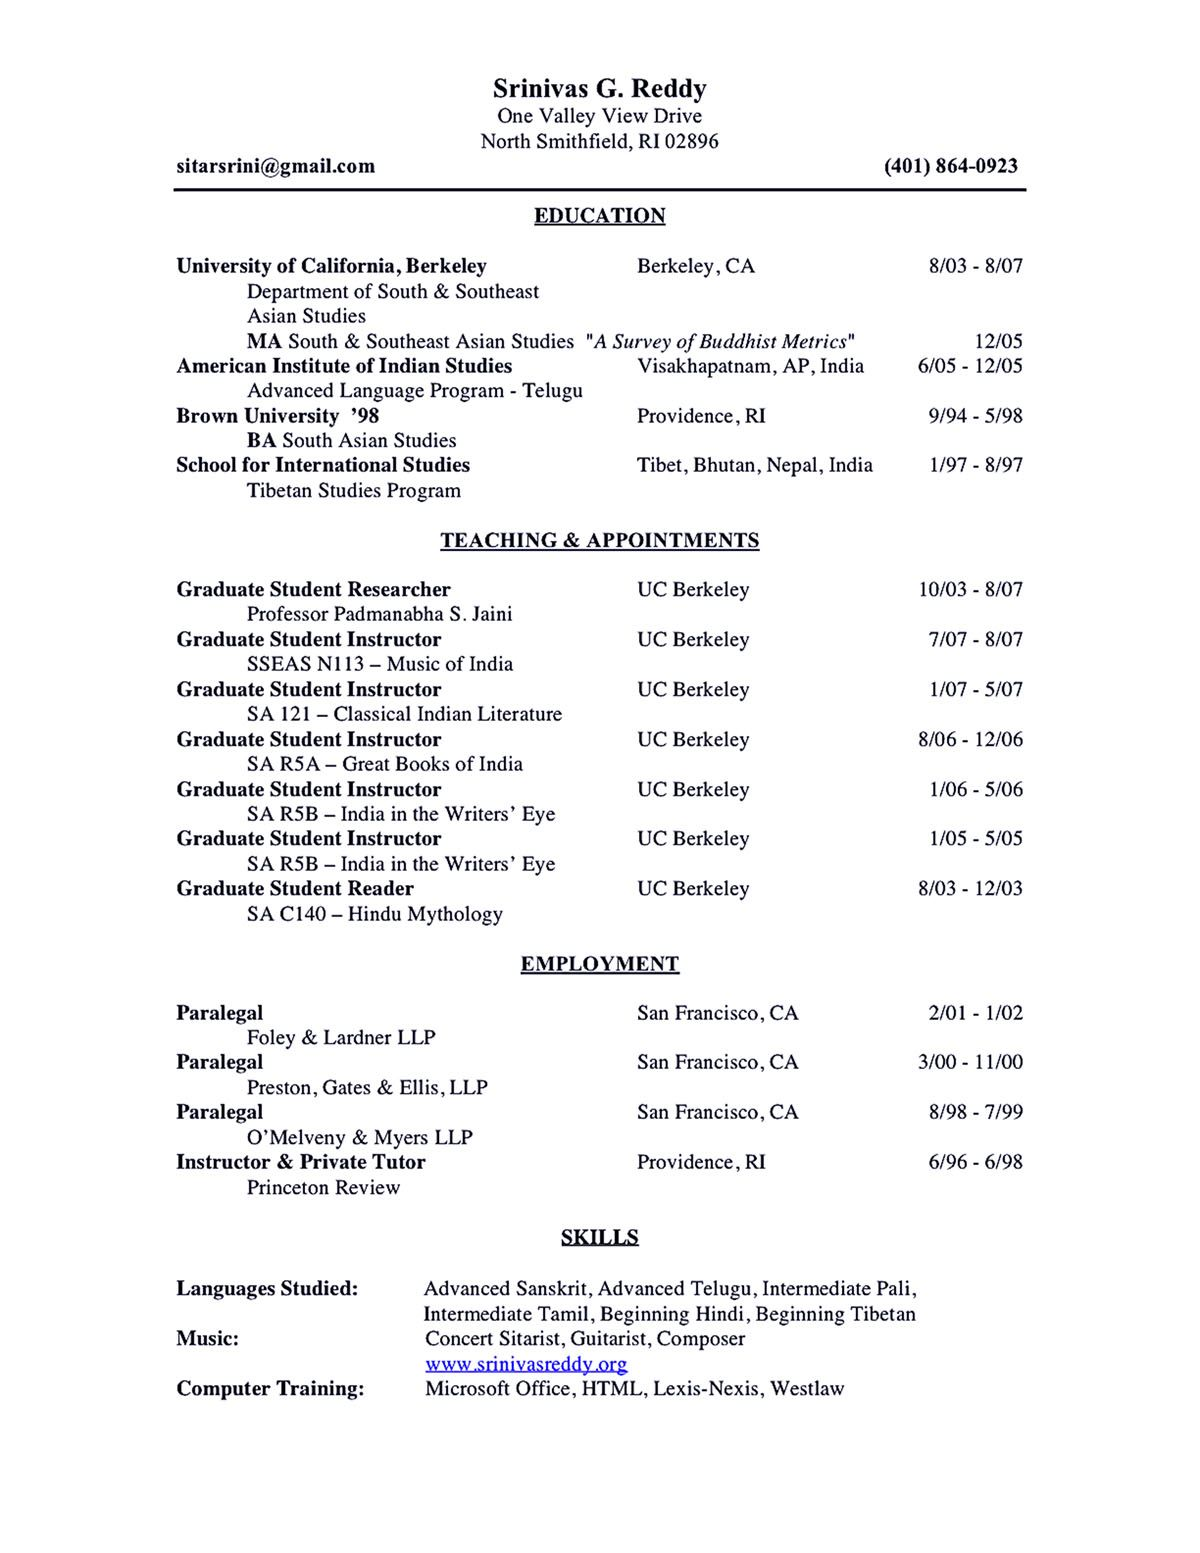 Scholarship Resume Template Academic Resume Sample Shows You How To Make Academic Resume